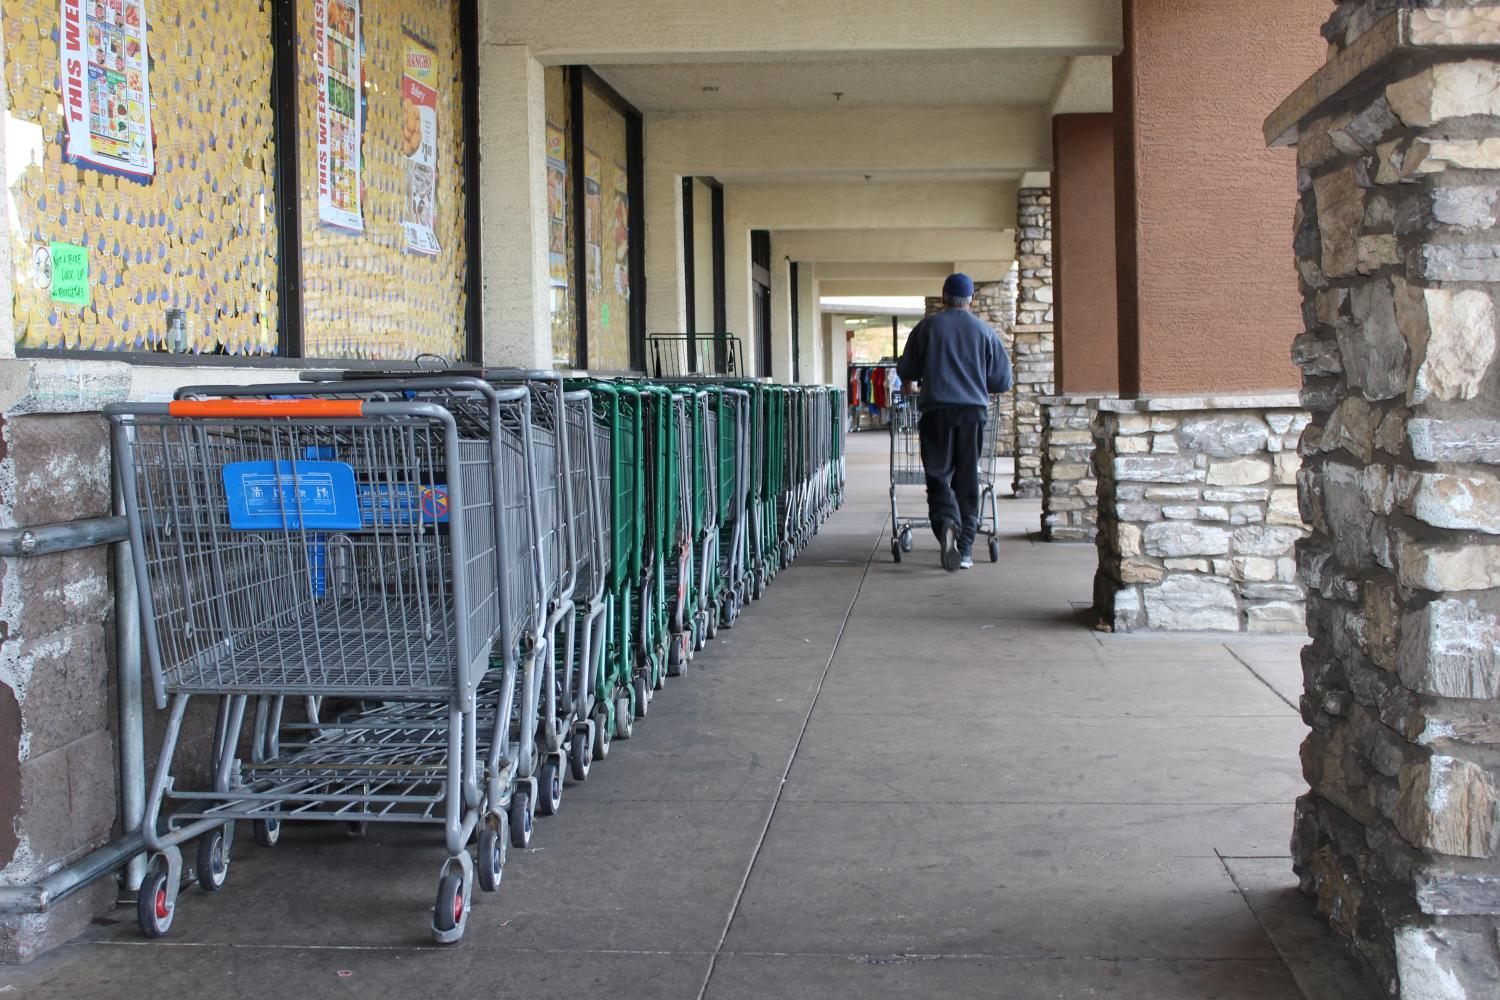 The supermarket El Rancho loses about 30 shopping carts a week. They recover carts via Arizona Cart Services.